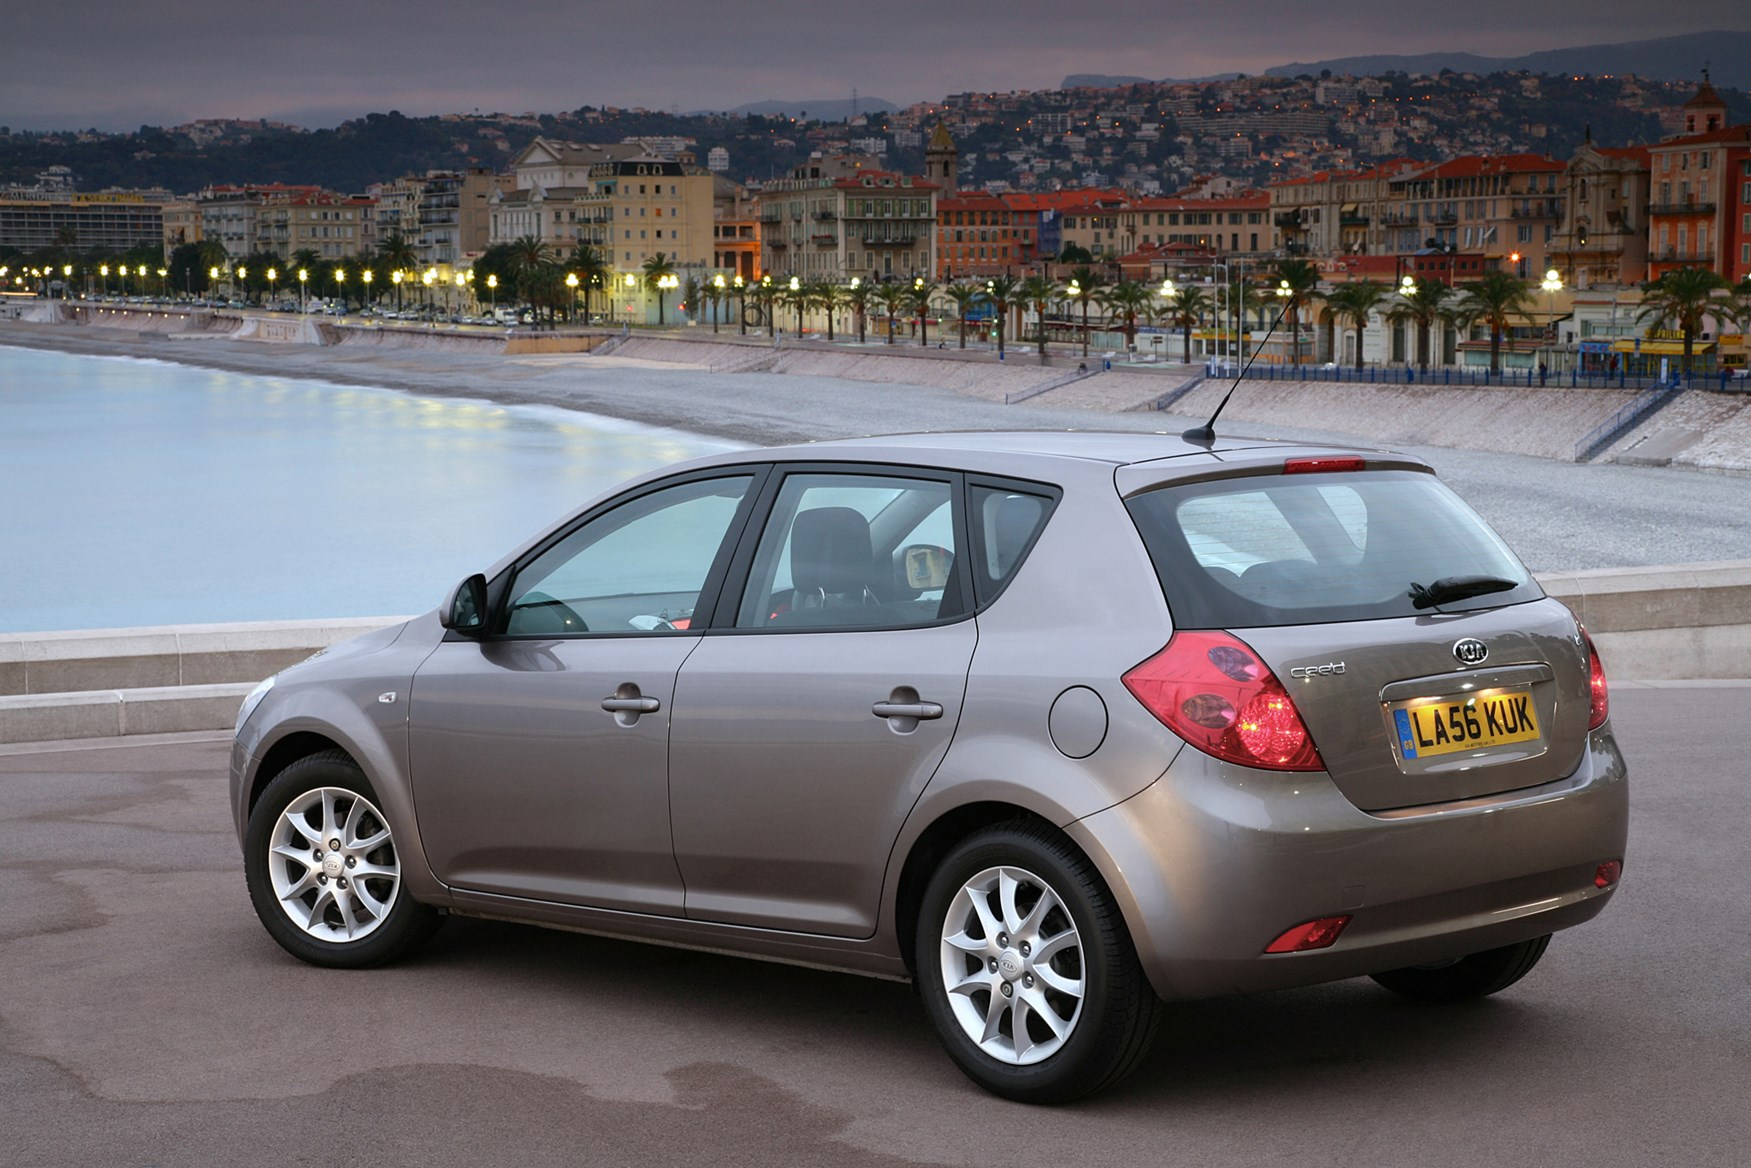 kia ceed hatchback review 2007 2012 parkers. Black Bedroom Furniture Sets. Home Design Ideas